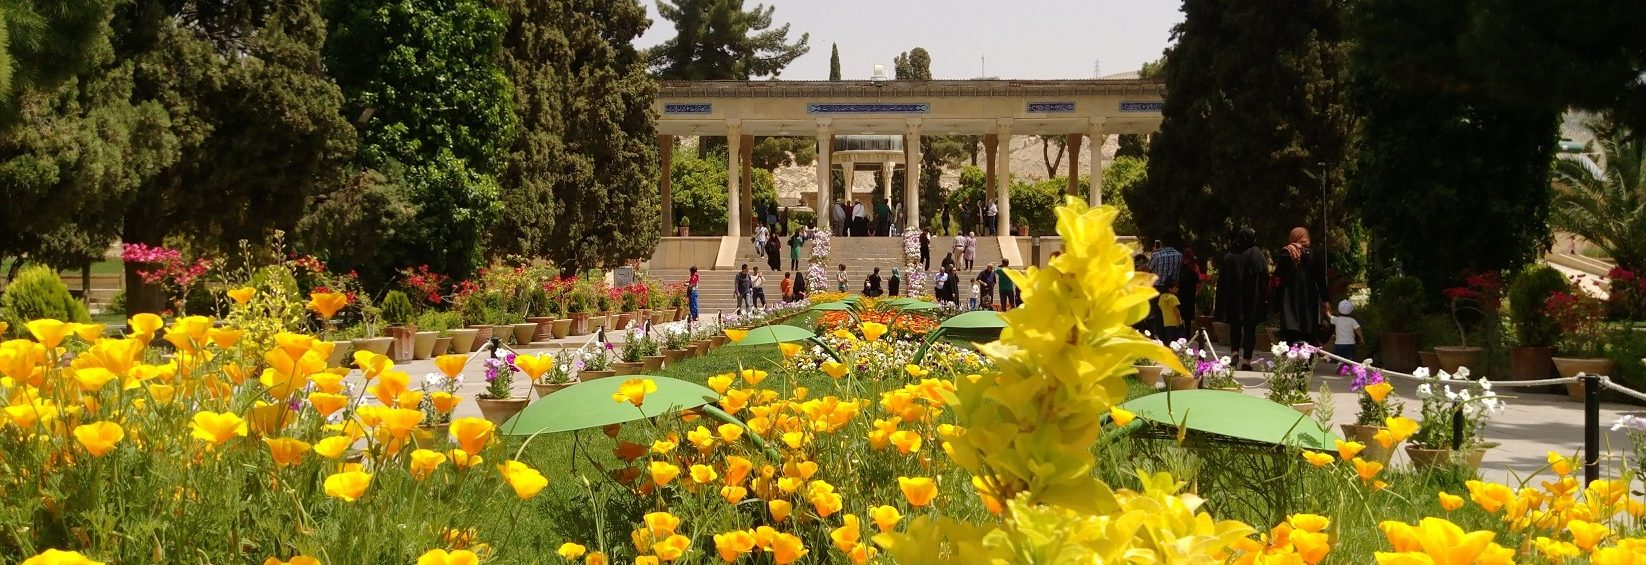 Hafez tomb of Shiraz, city of gardens, le grand tour de l' Iran